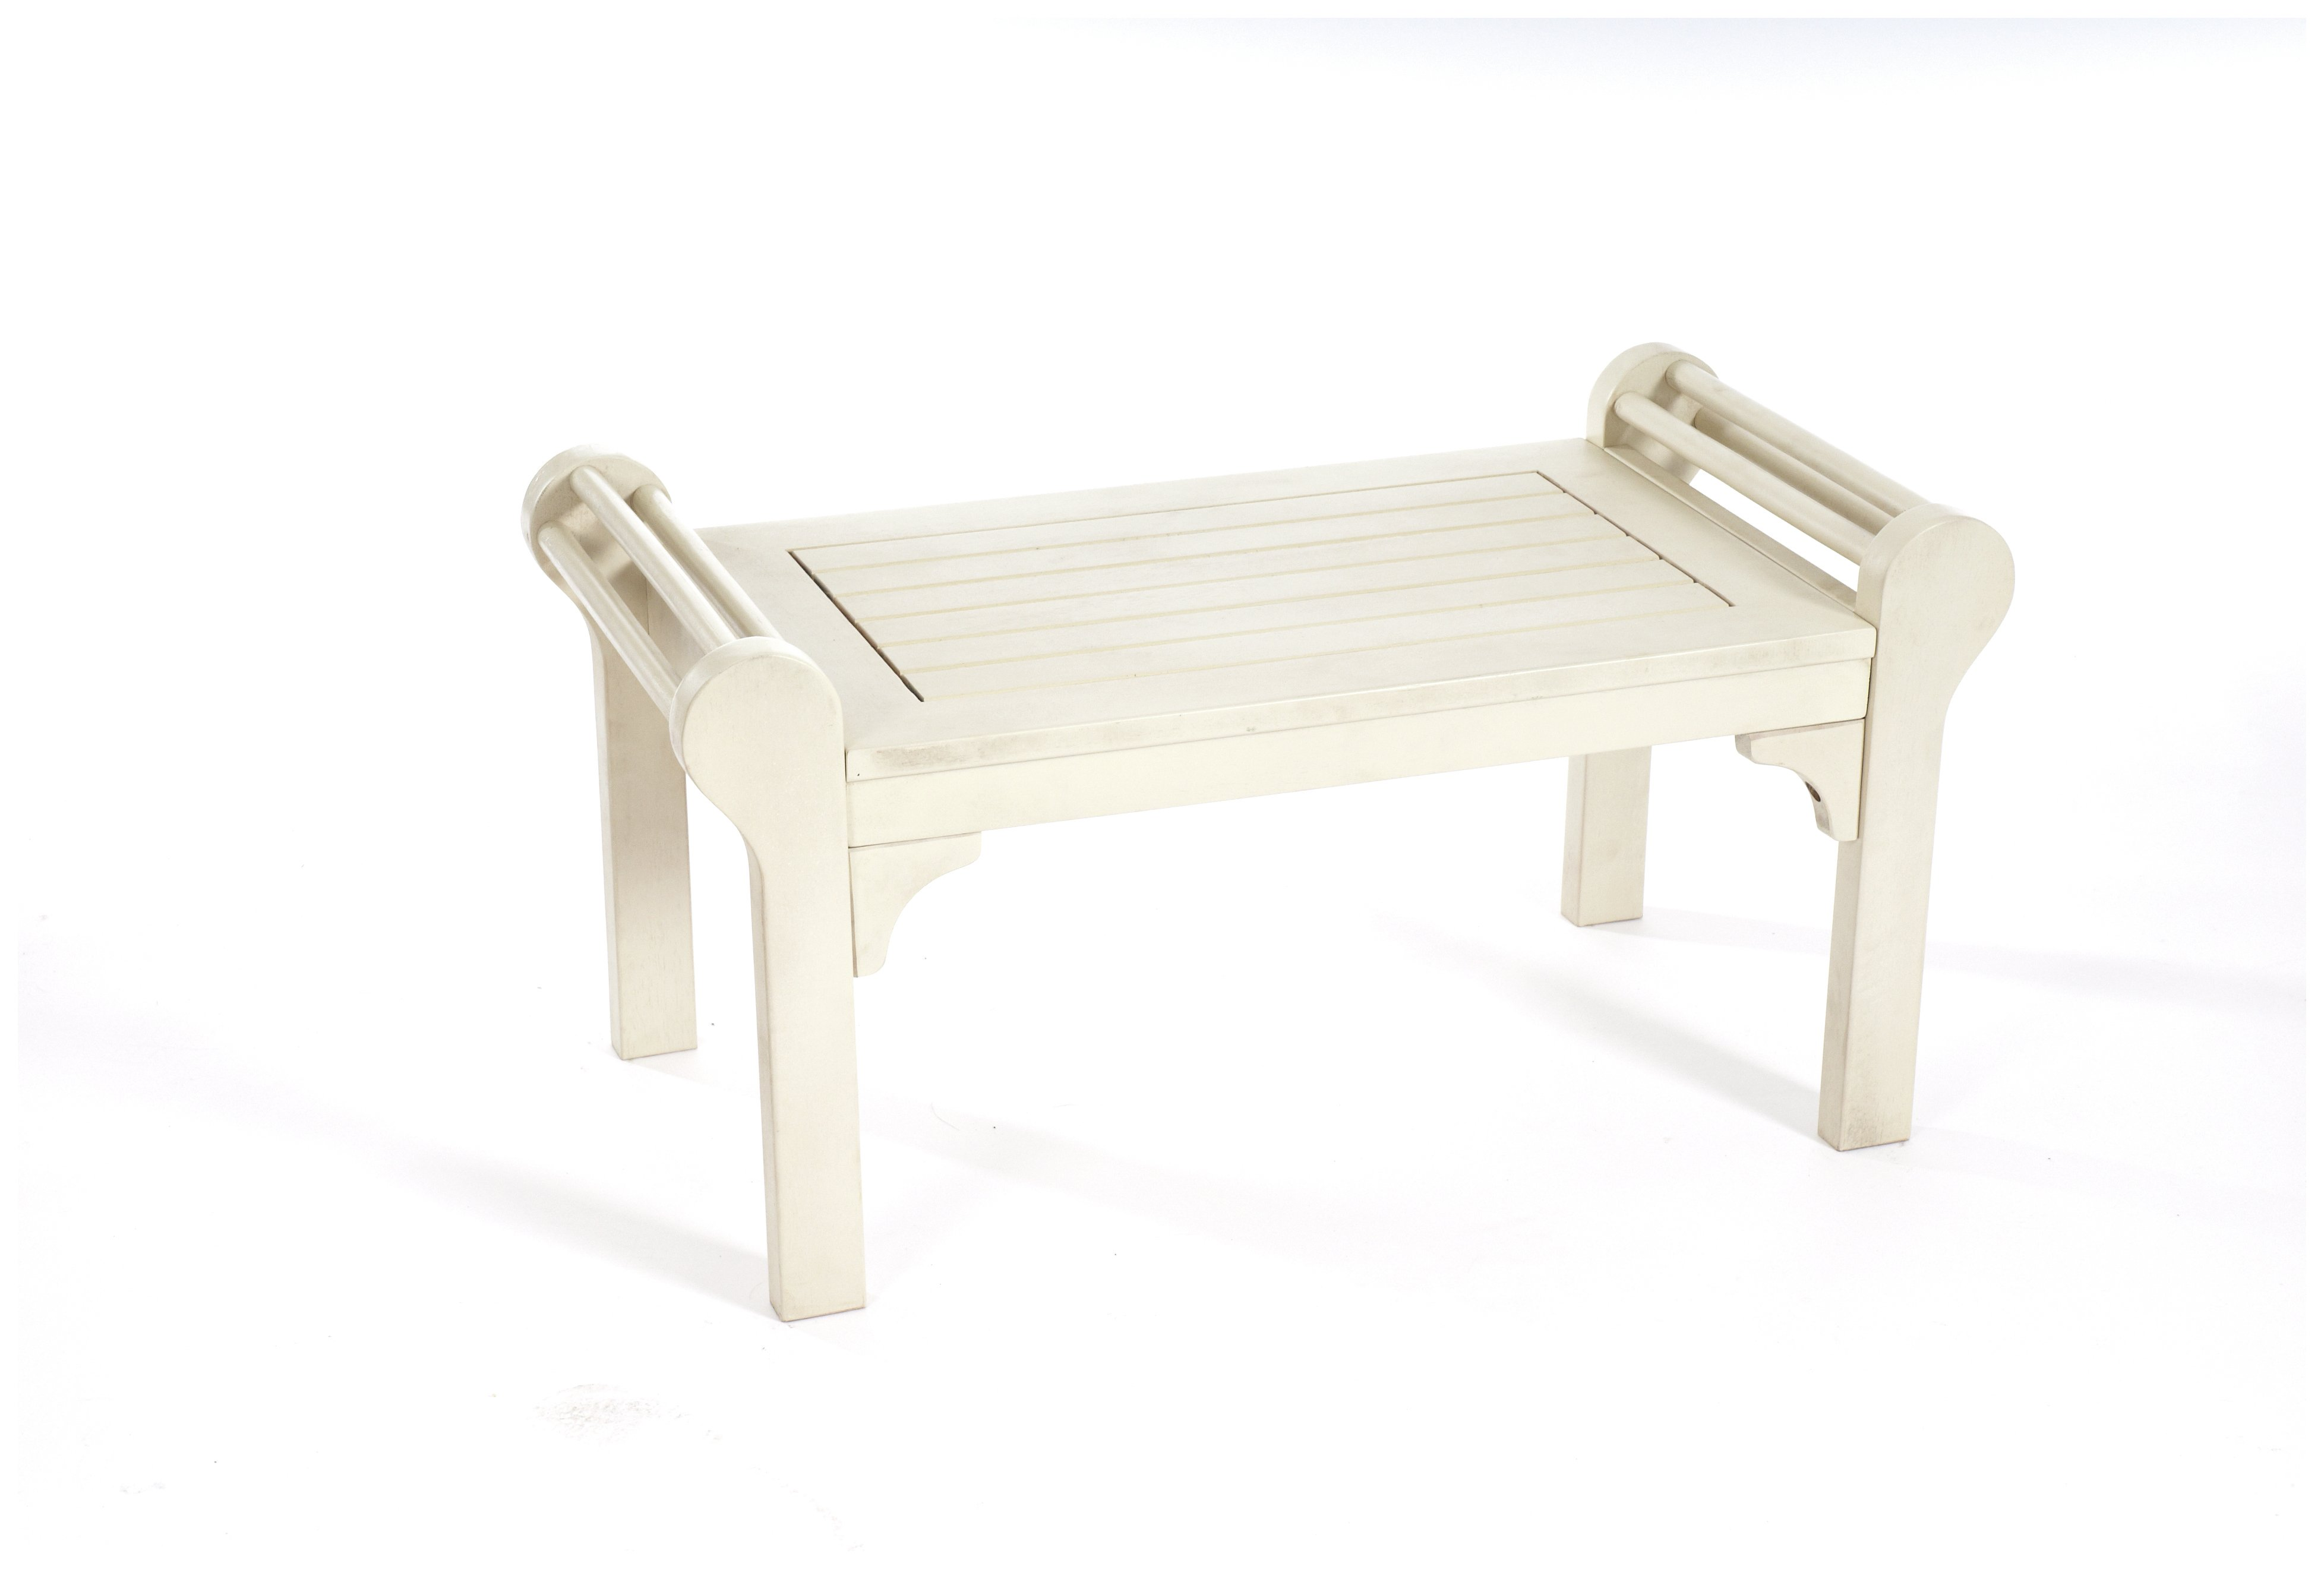 Greenhurst Lutyens Coffee Table - White Oil. lowest price